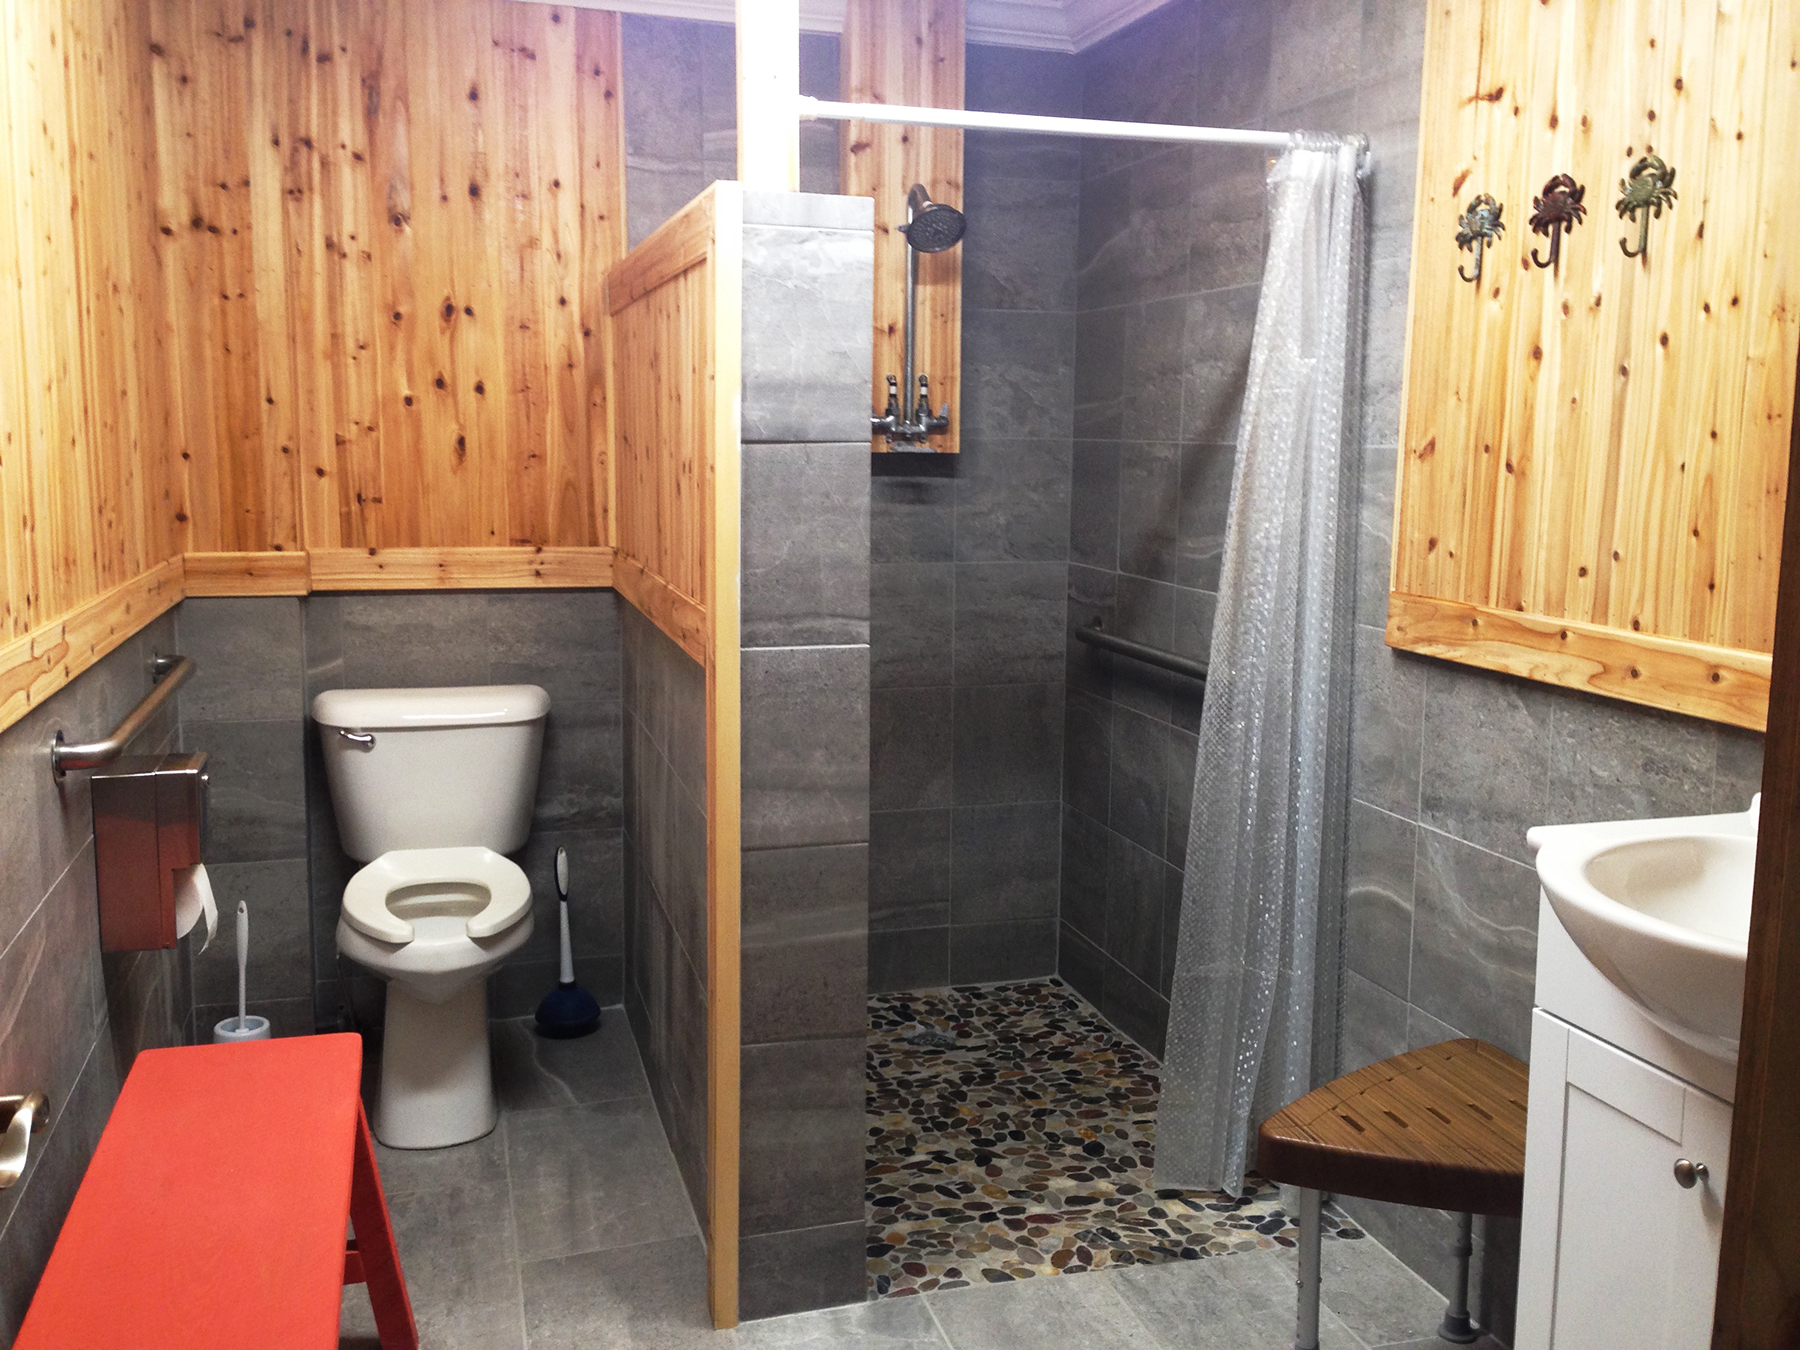 Newly Remodeled Restrooms and Showers